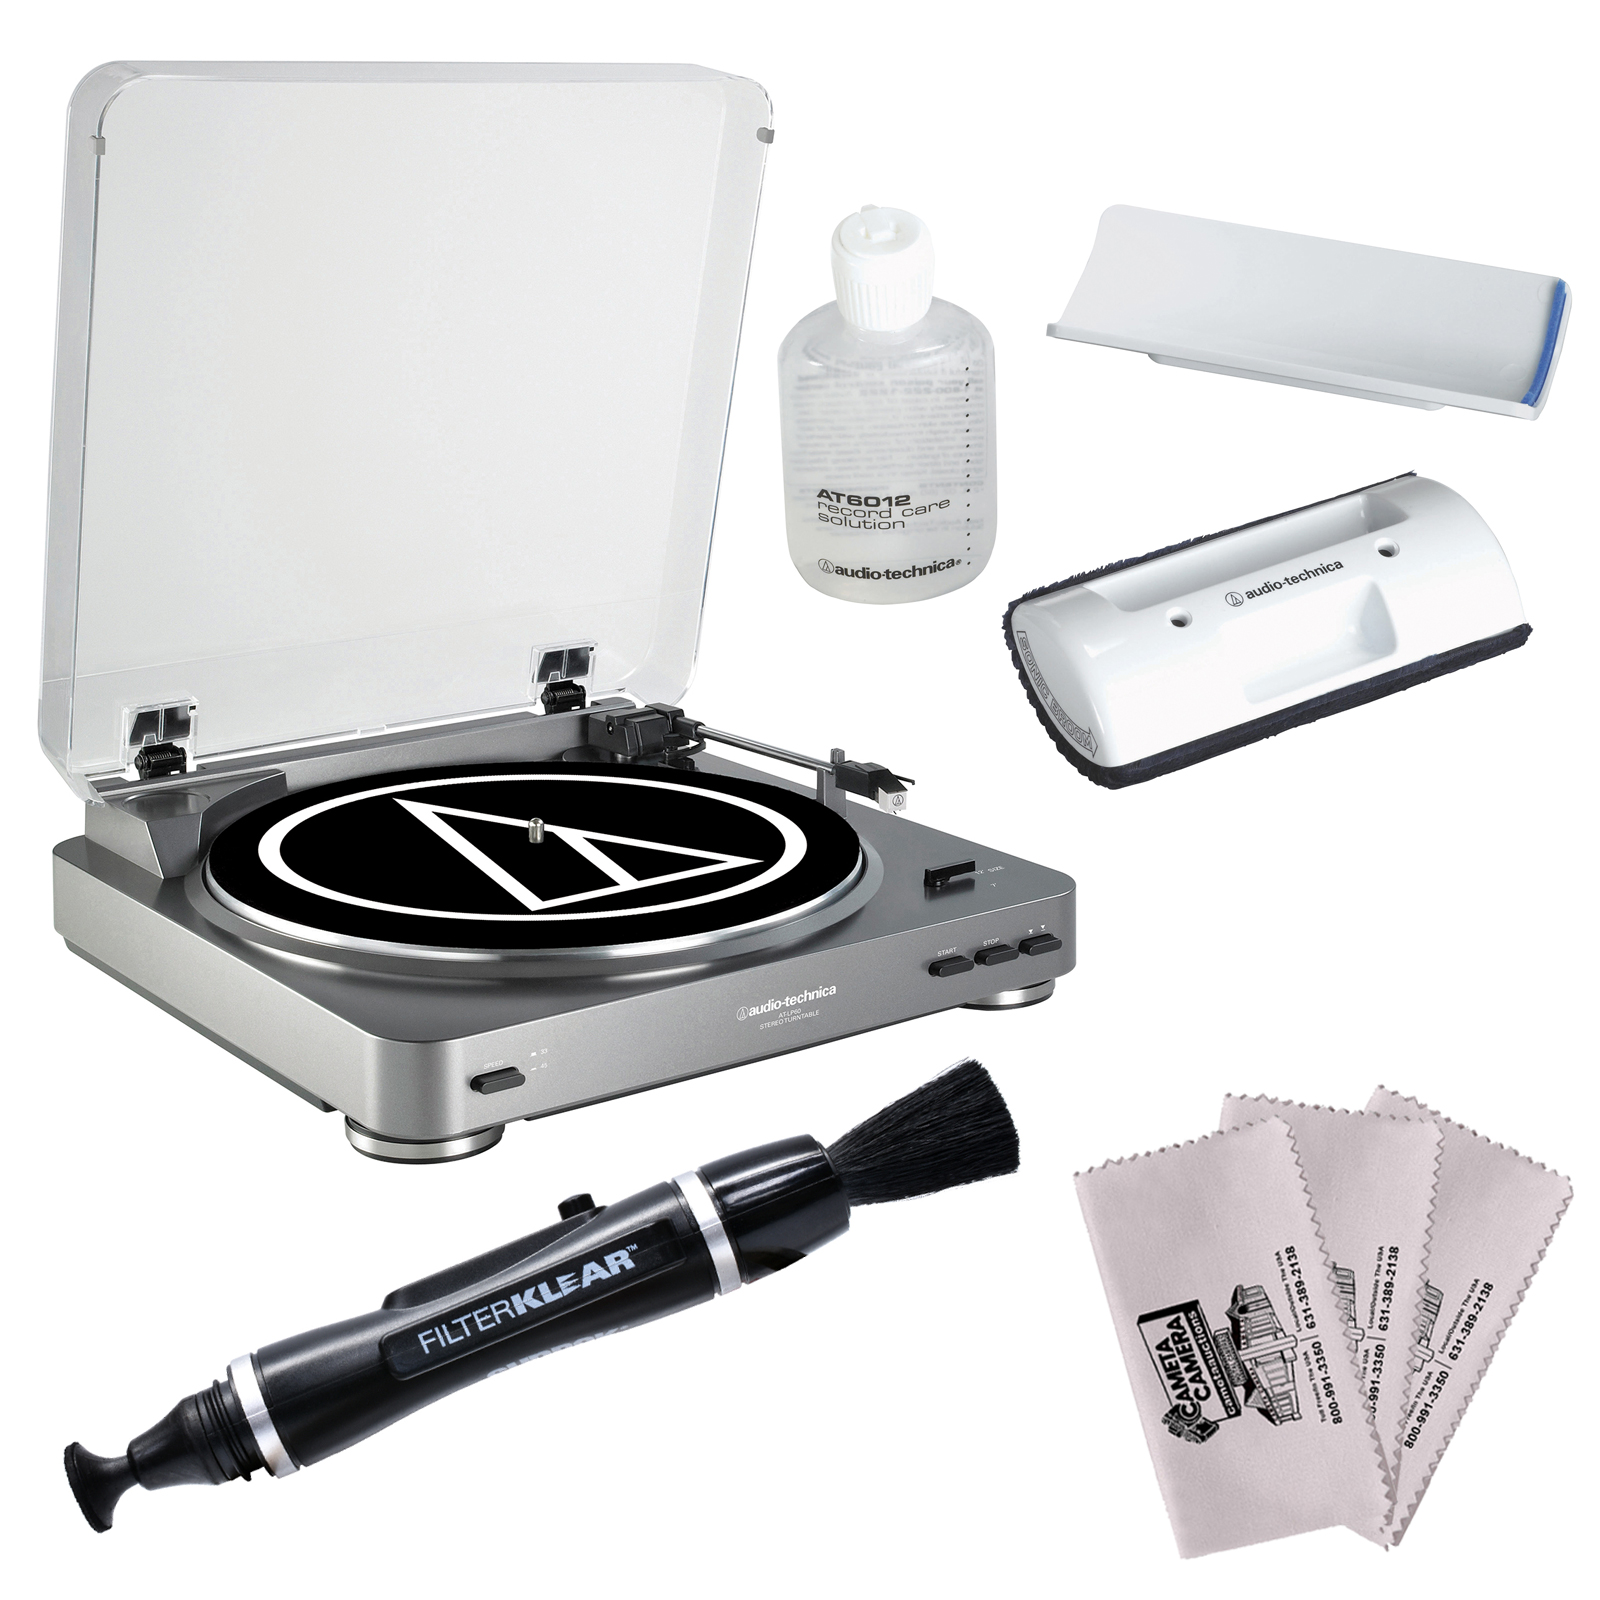 Audio-Technica AT-LP60-USB Automatic Belt-Drive Turntable & Recording Software (Silver)... by Audio-Technica